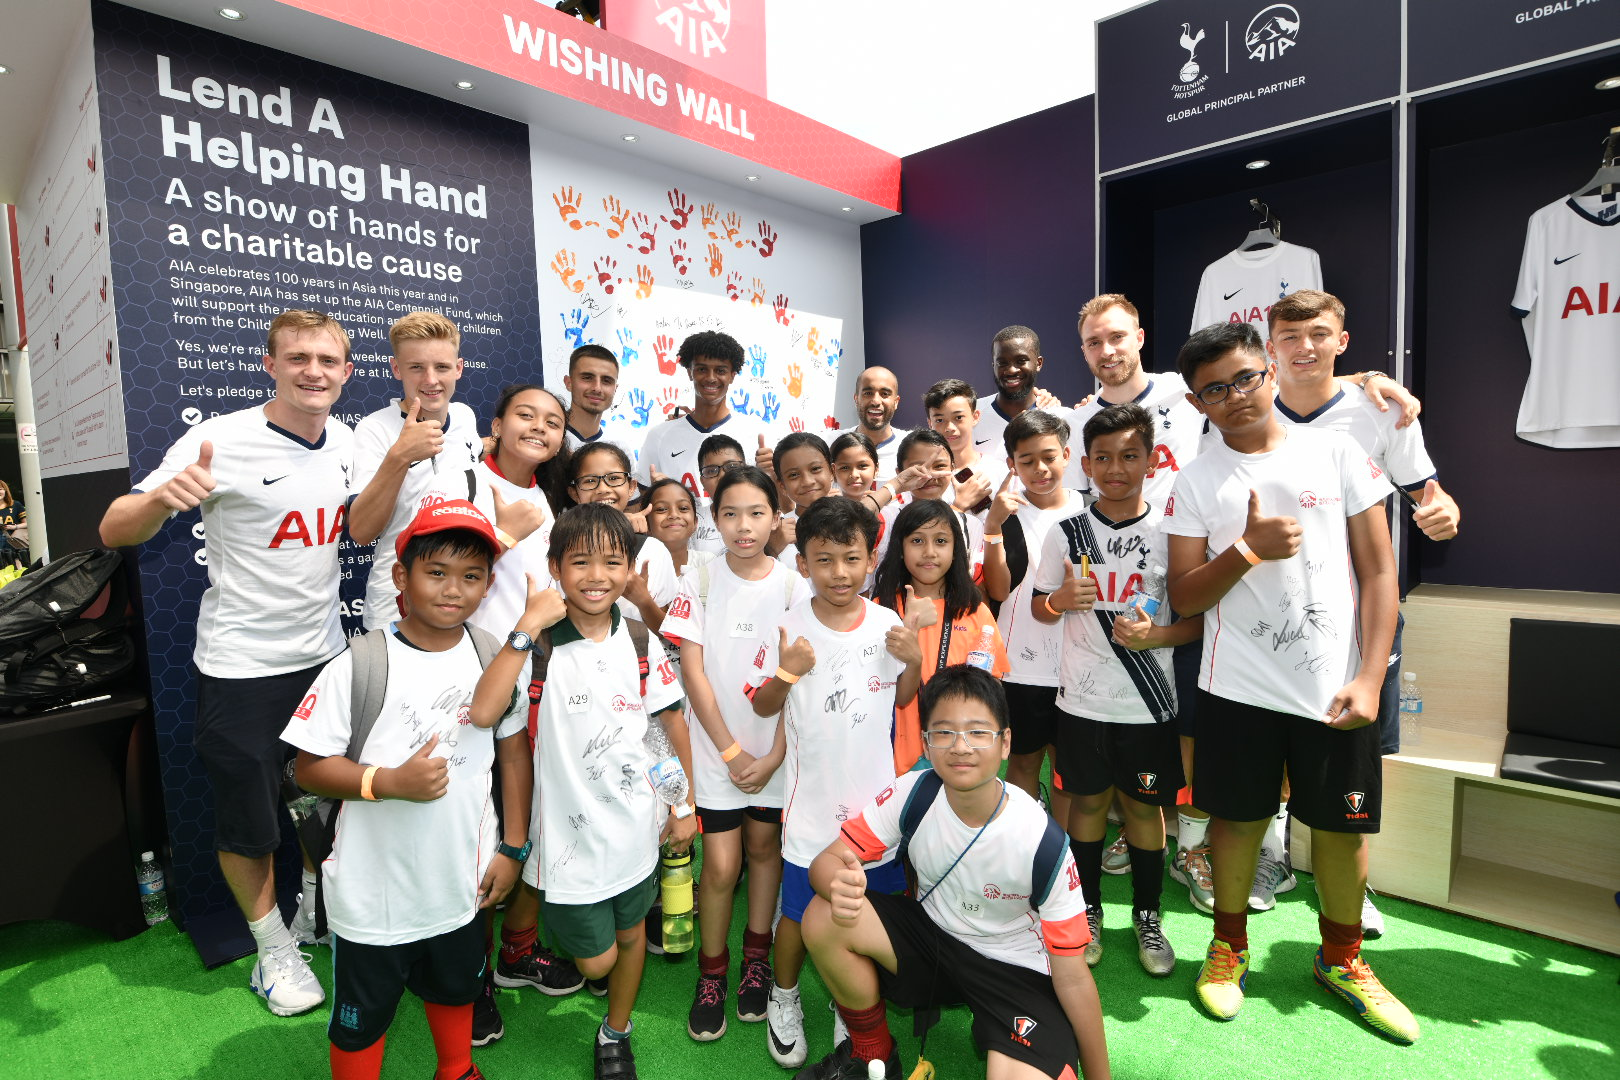 Tottenham Hotspur and 100-strong AIA Squad sets Singapore record for fastest football passes during the 2019 ICC Presented by AIA weekend - Alvinology